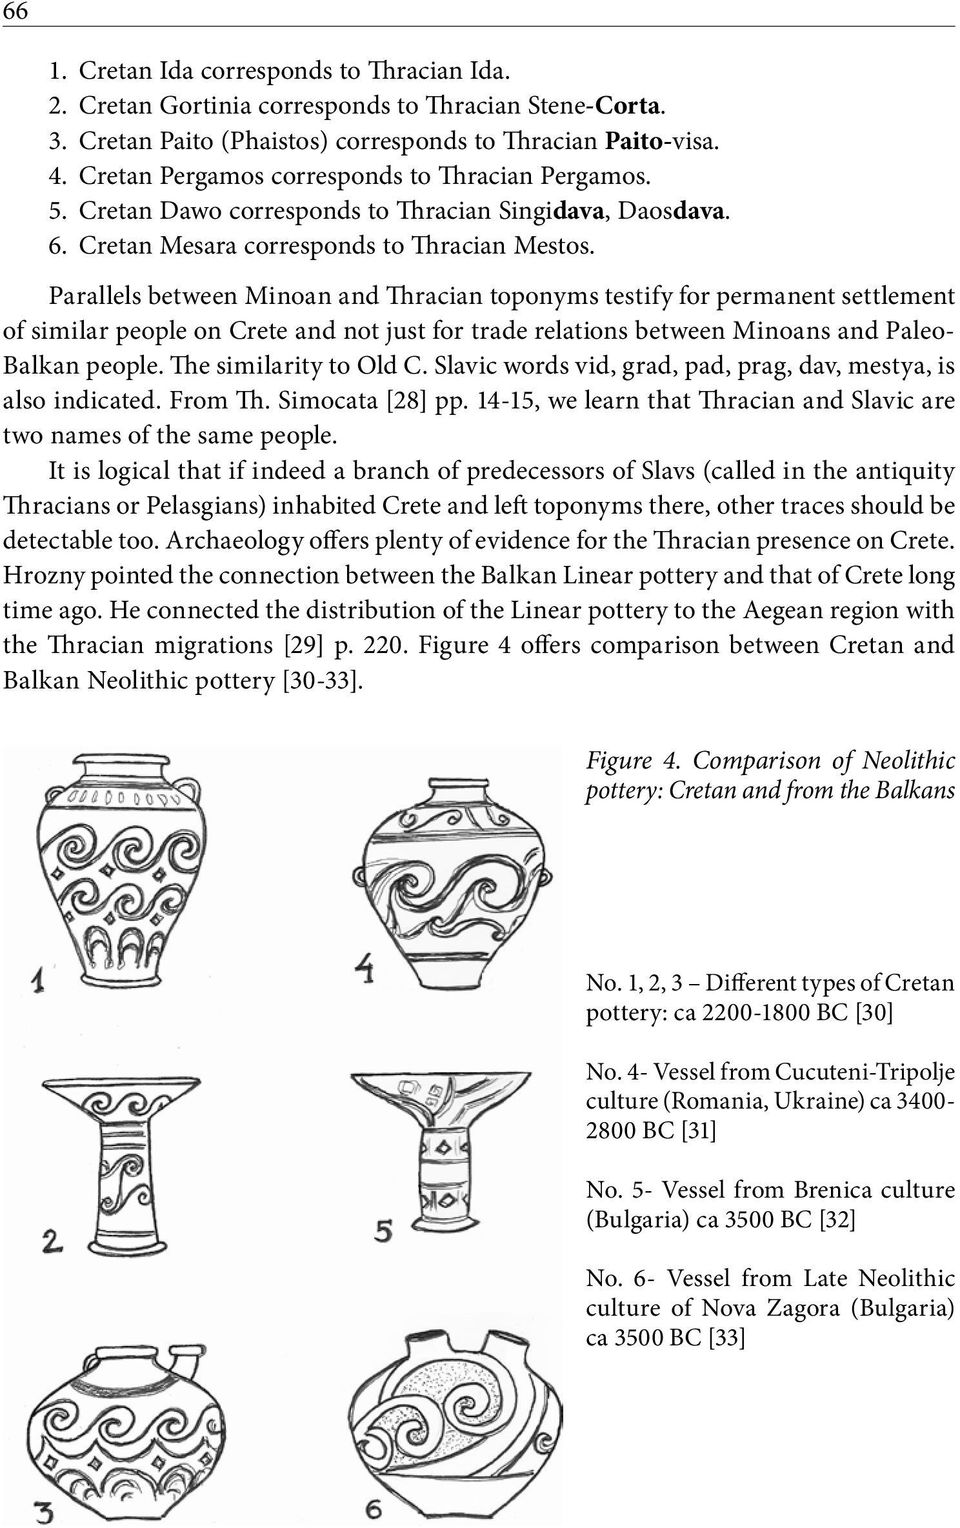 Parallels between Minoan and Thracian toponyms testify for permanent settlement of similar people on Crete and not just for trade relations between Minoans and Paleo- Balkan people.